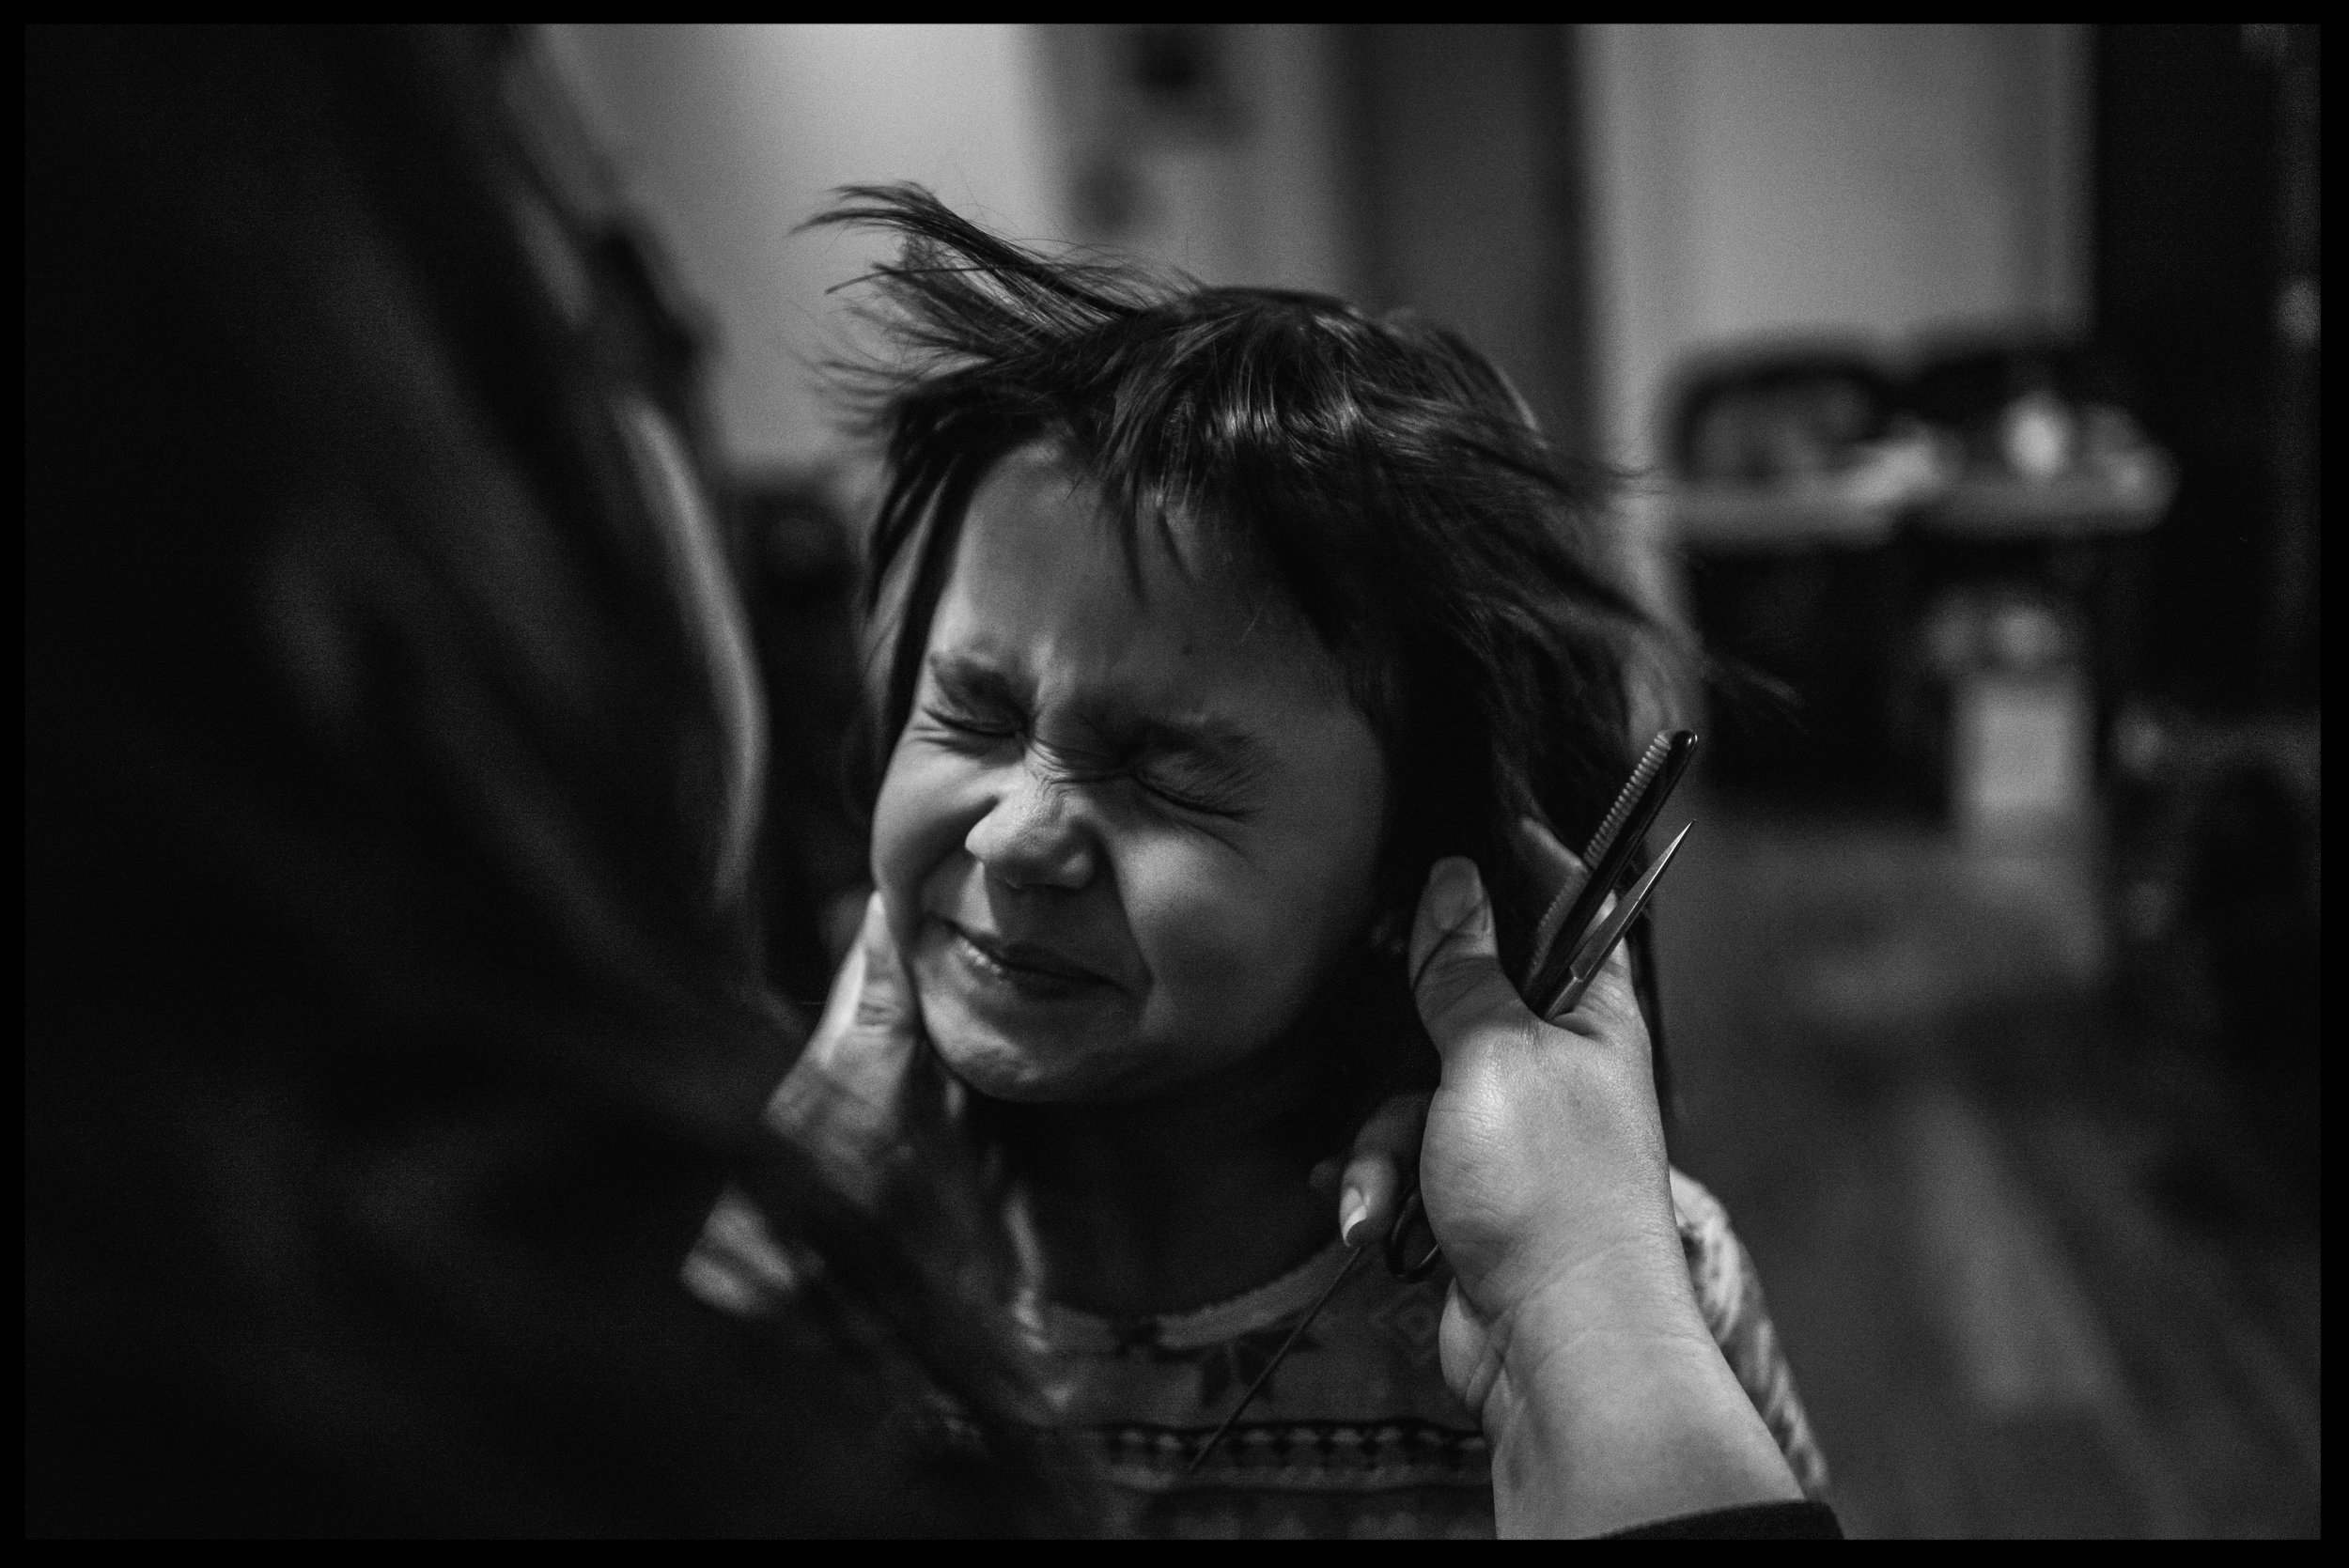 After cutting daughter's hair, she blows the loose hairs off of daughter's face, black and white, Lakewood, Colorado